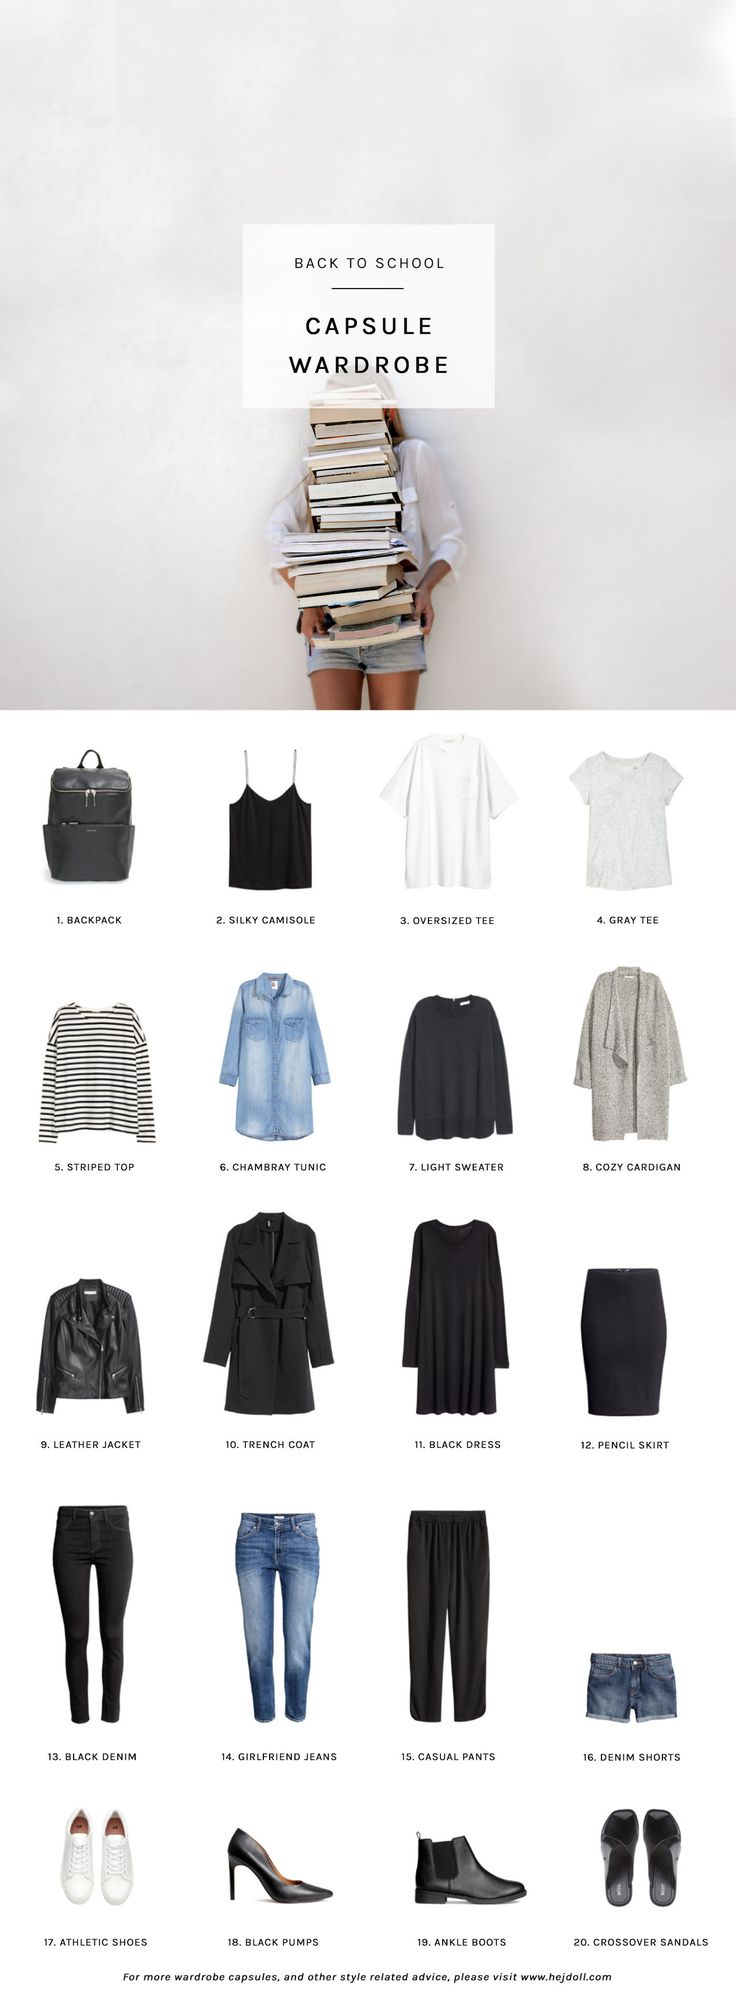 Back to School Capsule Wardrobe - 20 items for perfect back-to-school outfits. http://hejdoll.com/back-school-capsule-wardrobe/?utm_campaign=coschedule&utm_source=pinterest&utm_medium=Jessica%20Doll&utm_content=Back%20to%20School%20Capsule%20Wardrobe